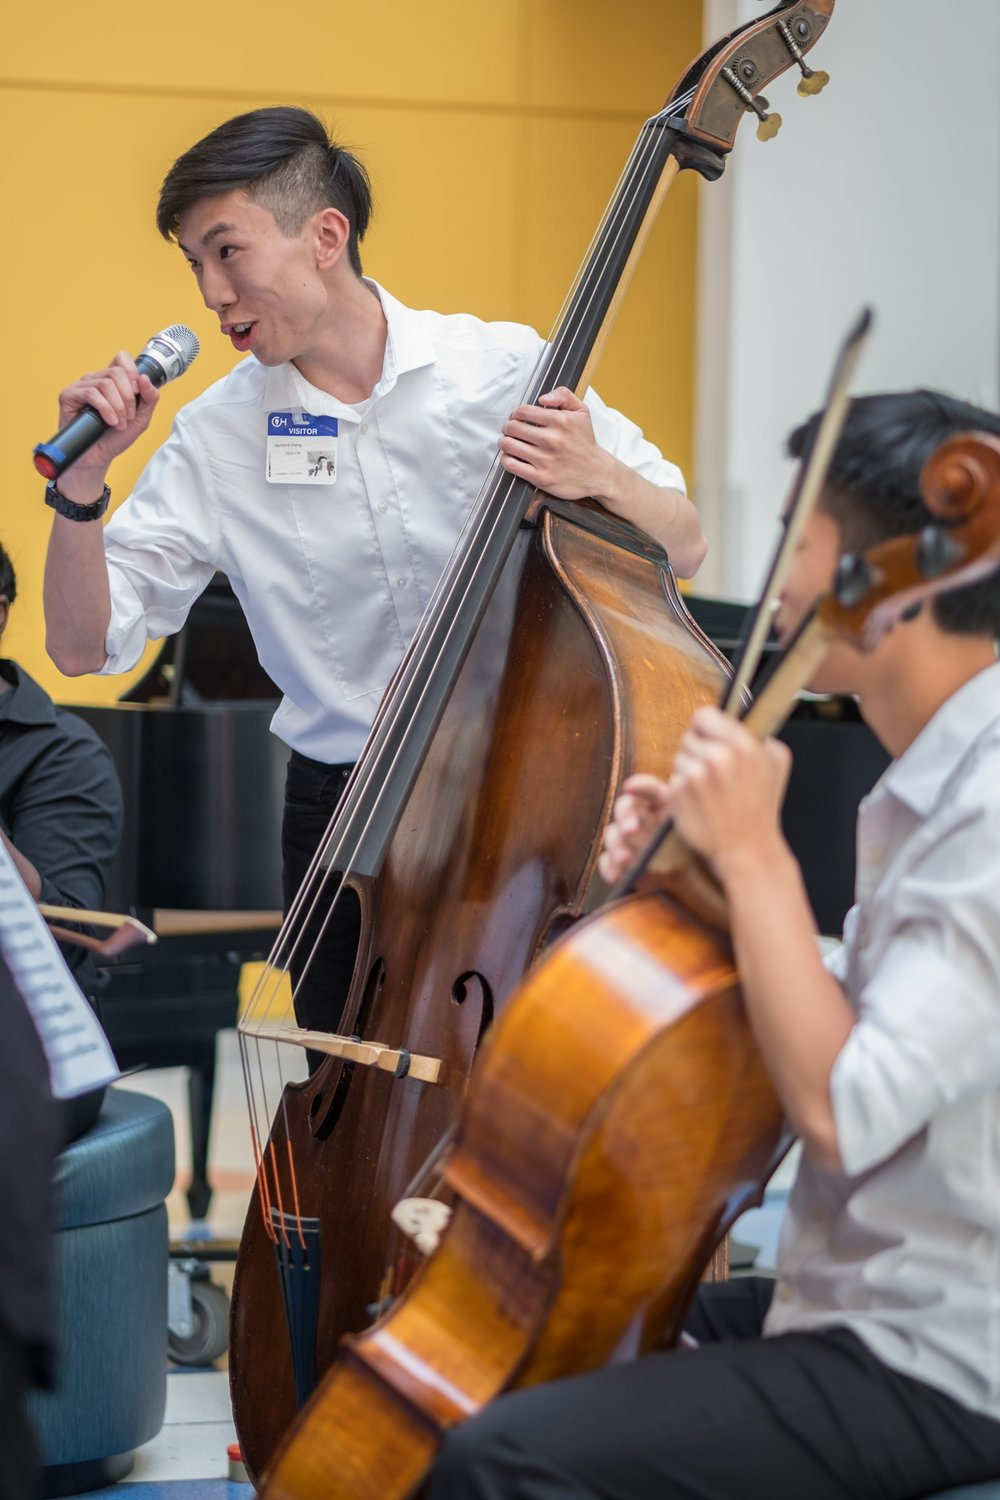 Raymond Zhang, double bass, Drexel University